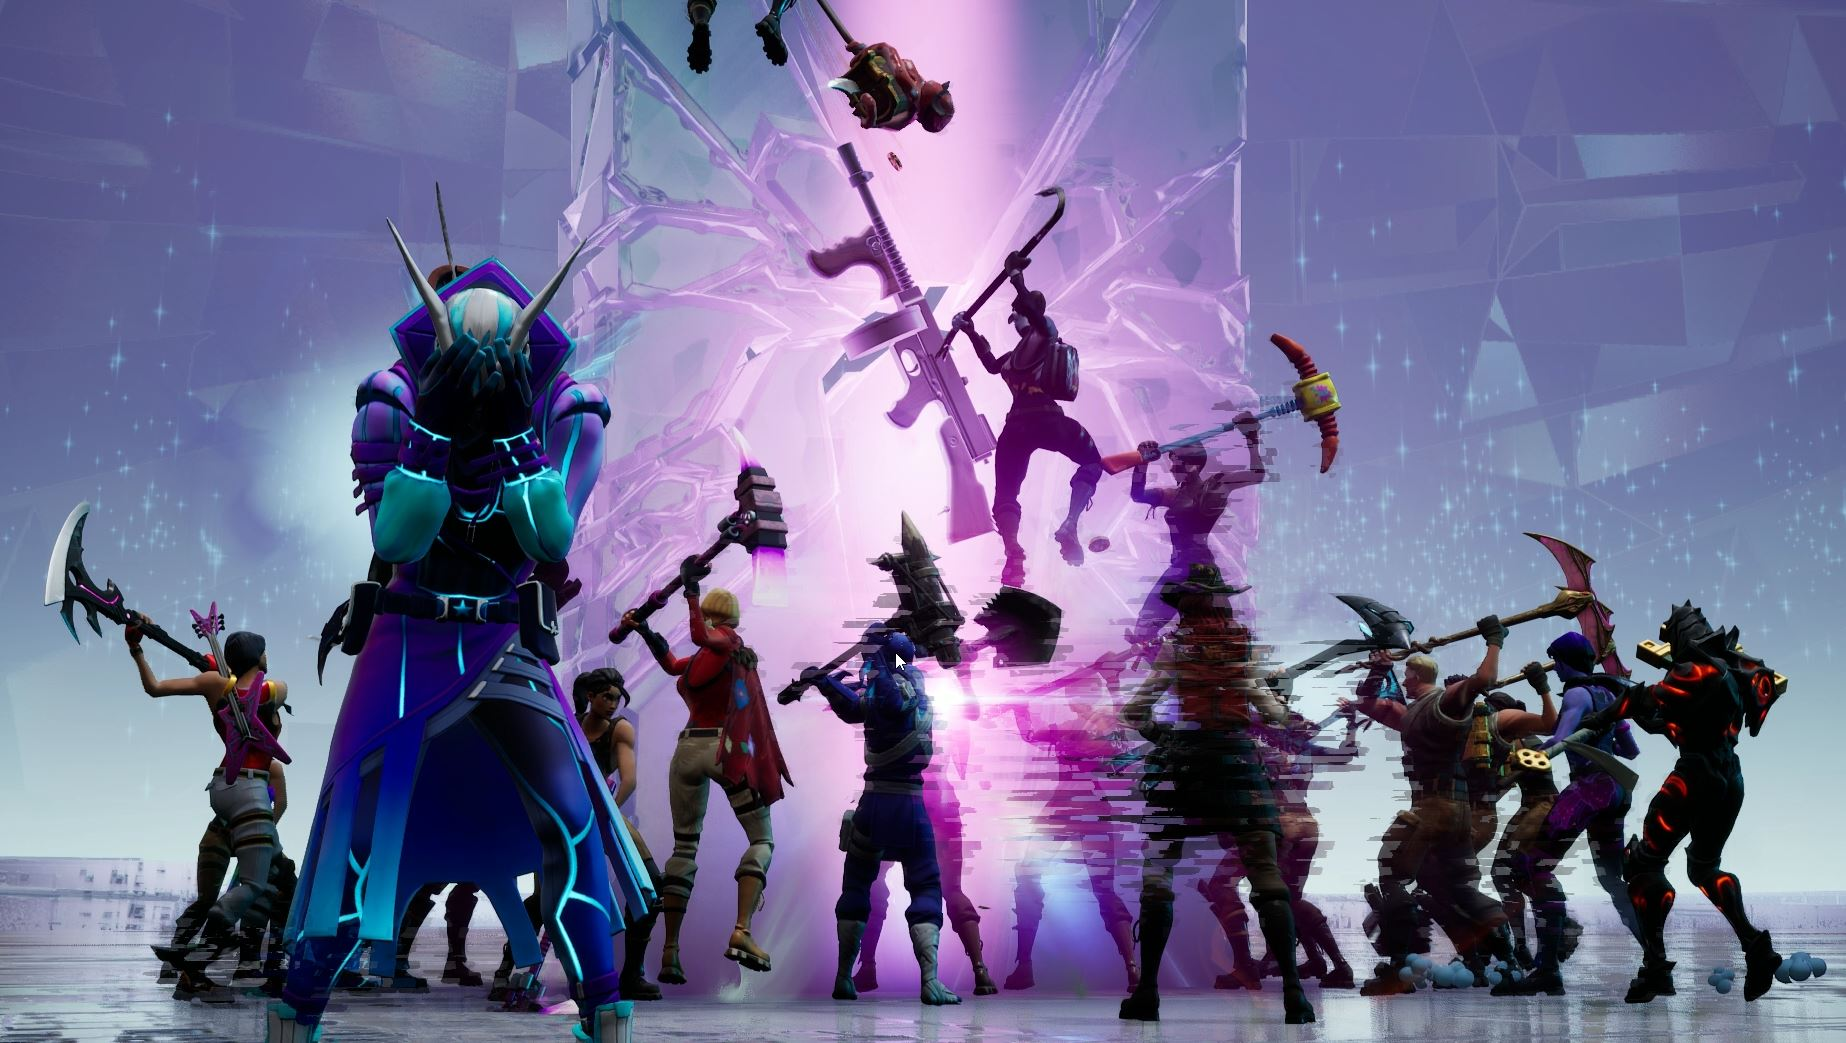 Fortnite Players To Get Arcana Glider After Unvaulting Issues